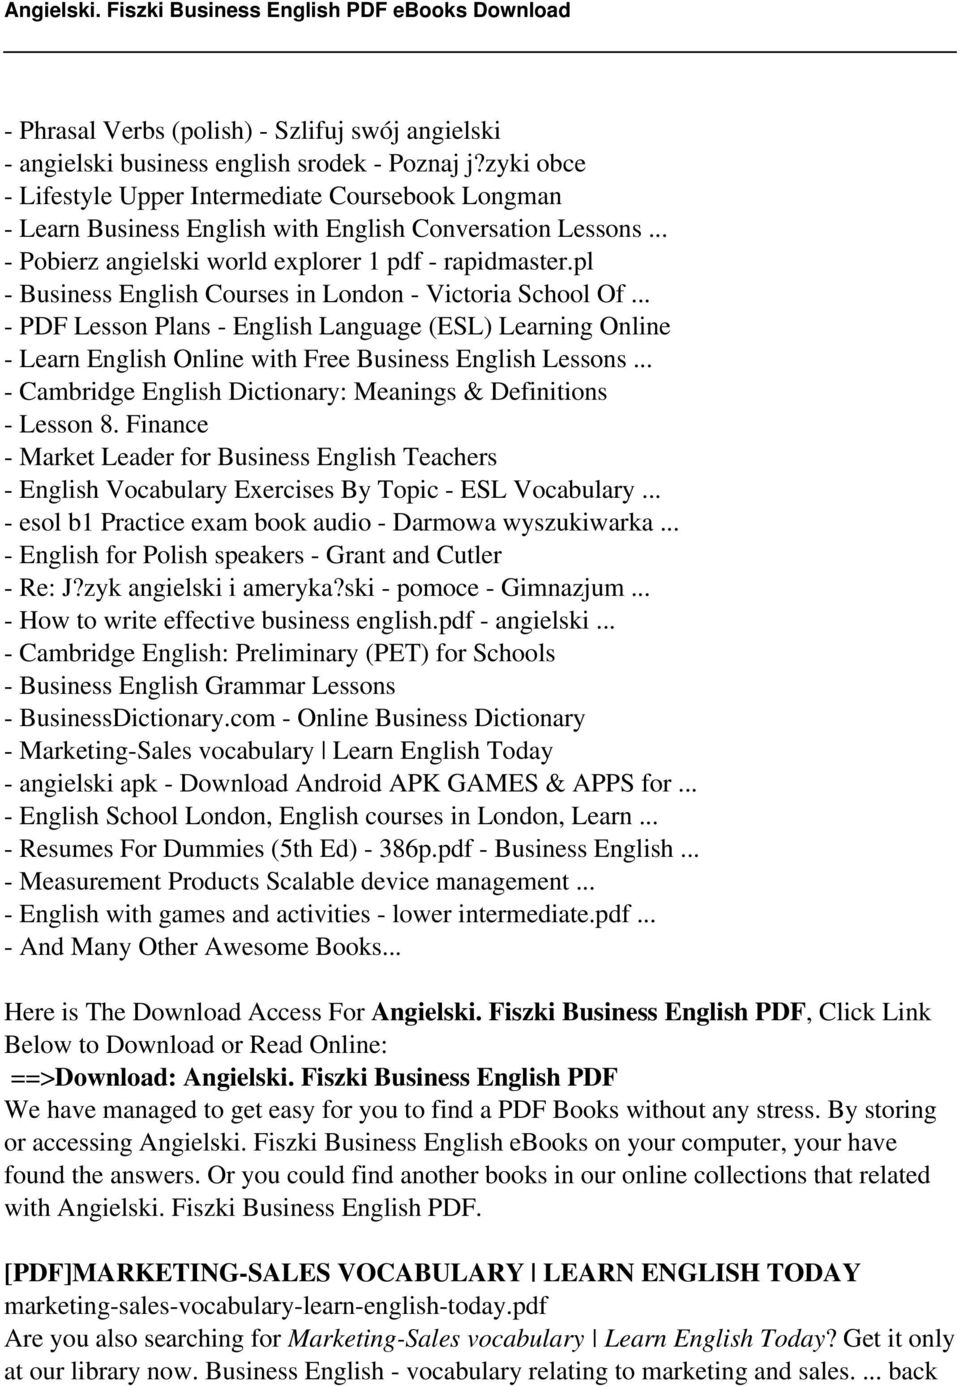 business english vocabulary pdf free download